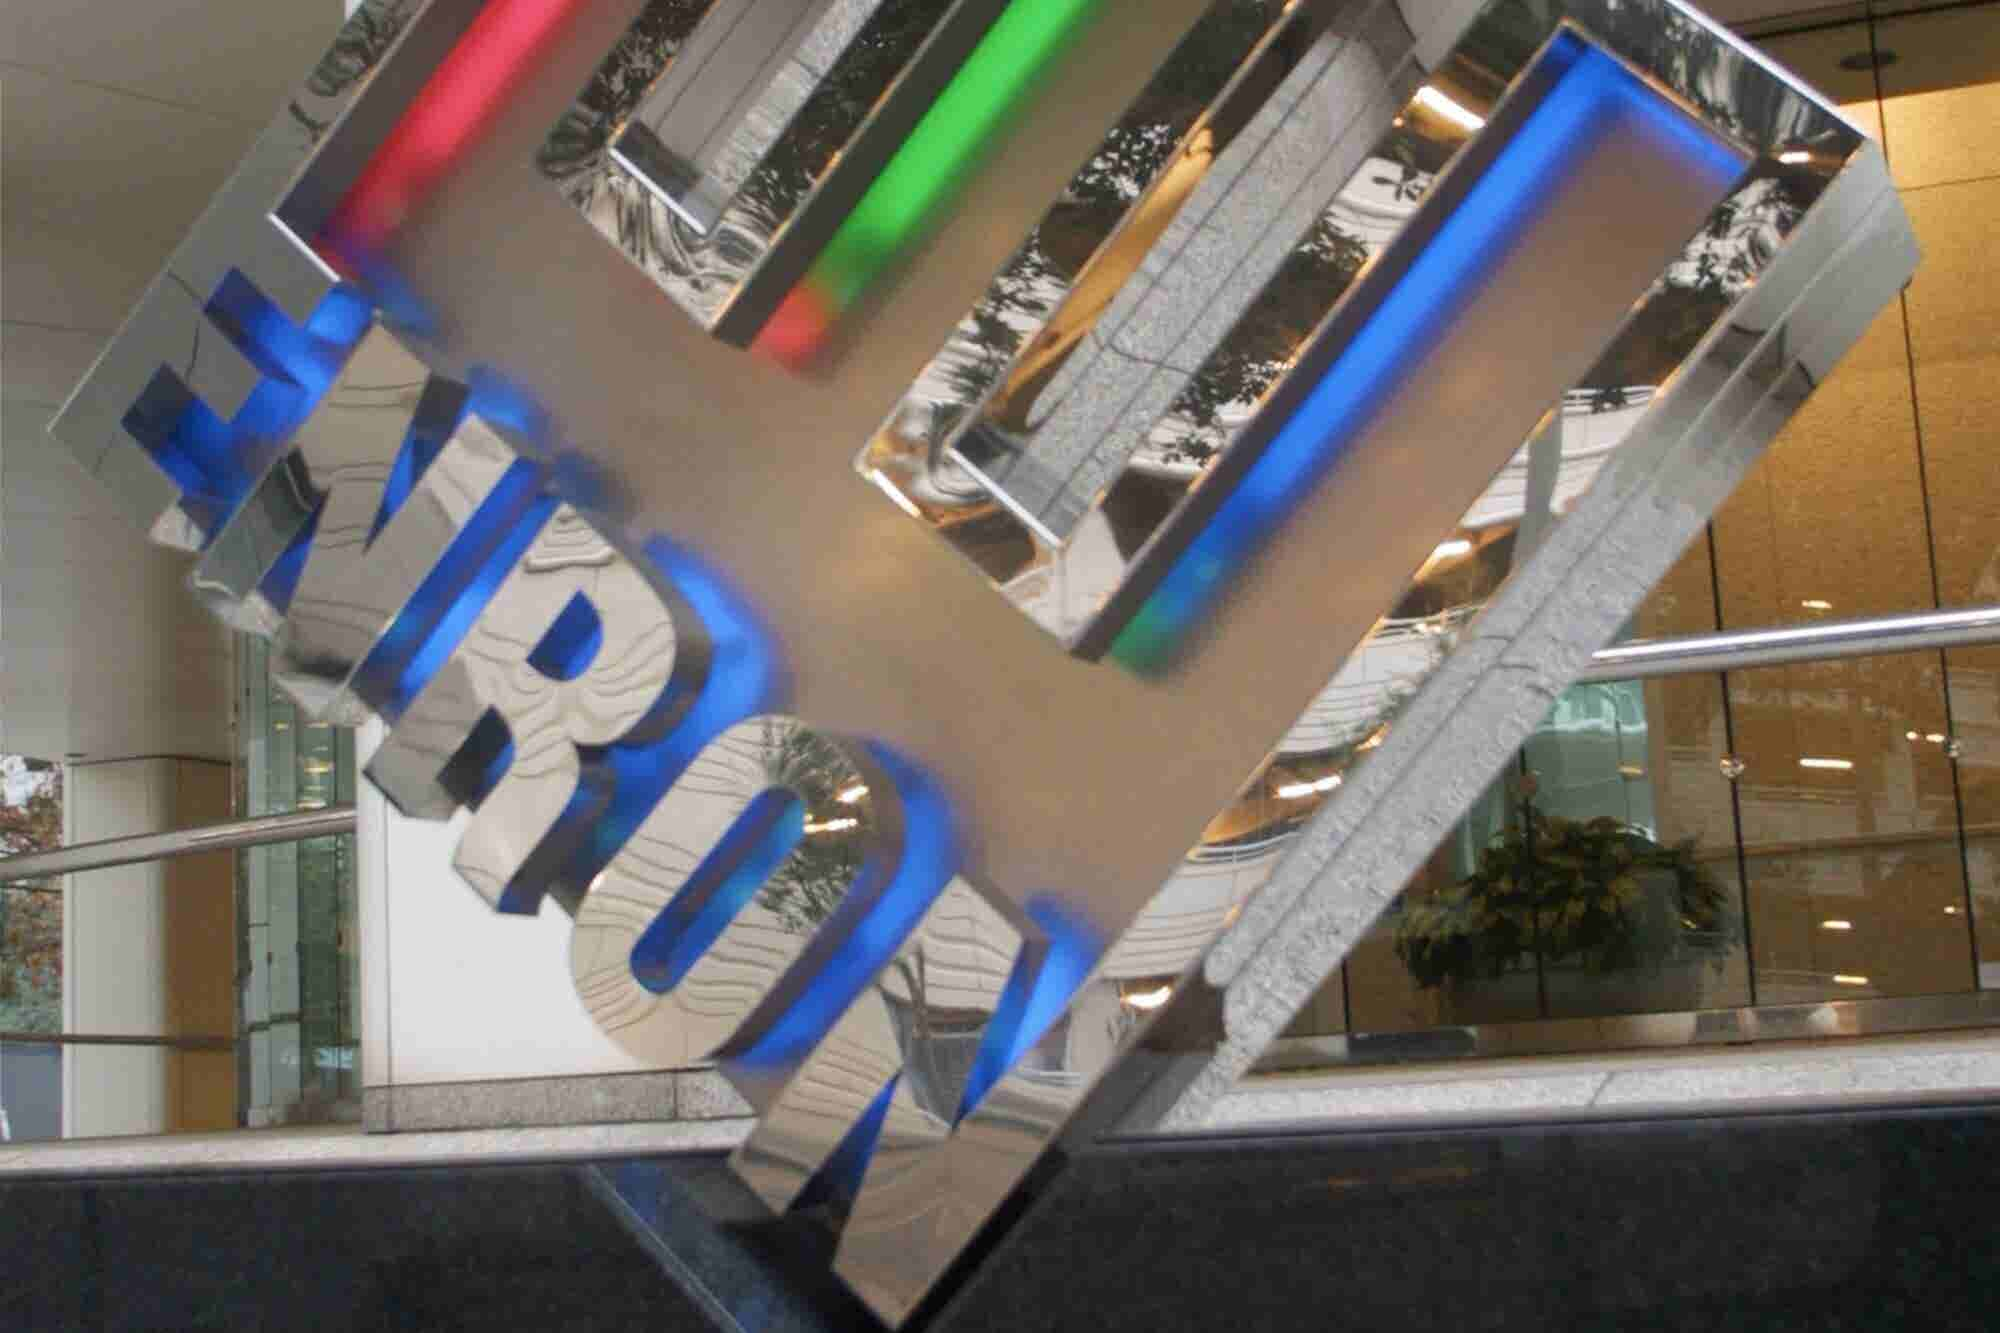 What Working at Enron Taught Me About Corporate Ethics